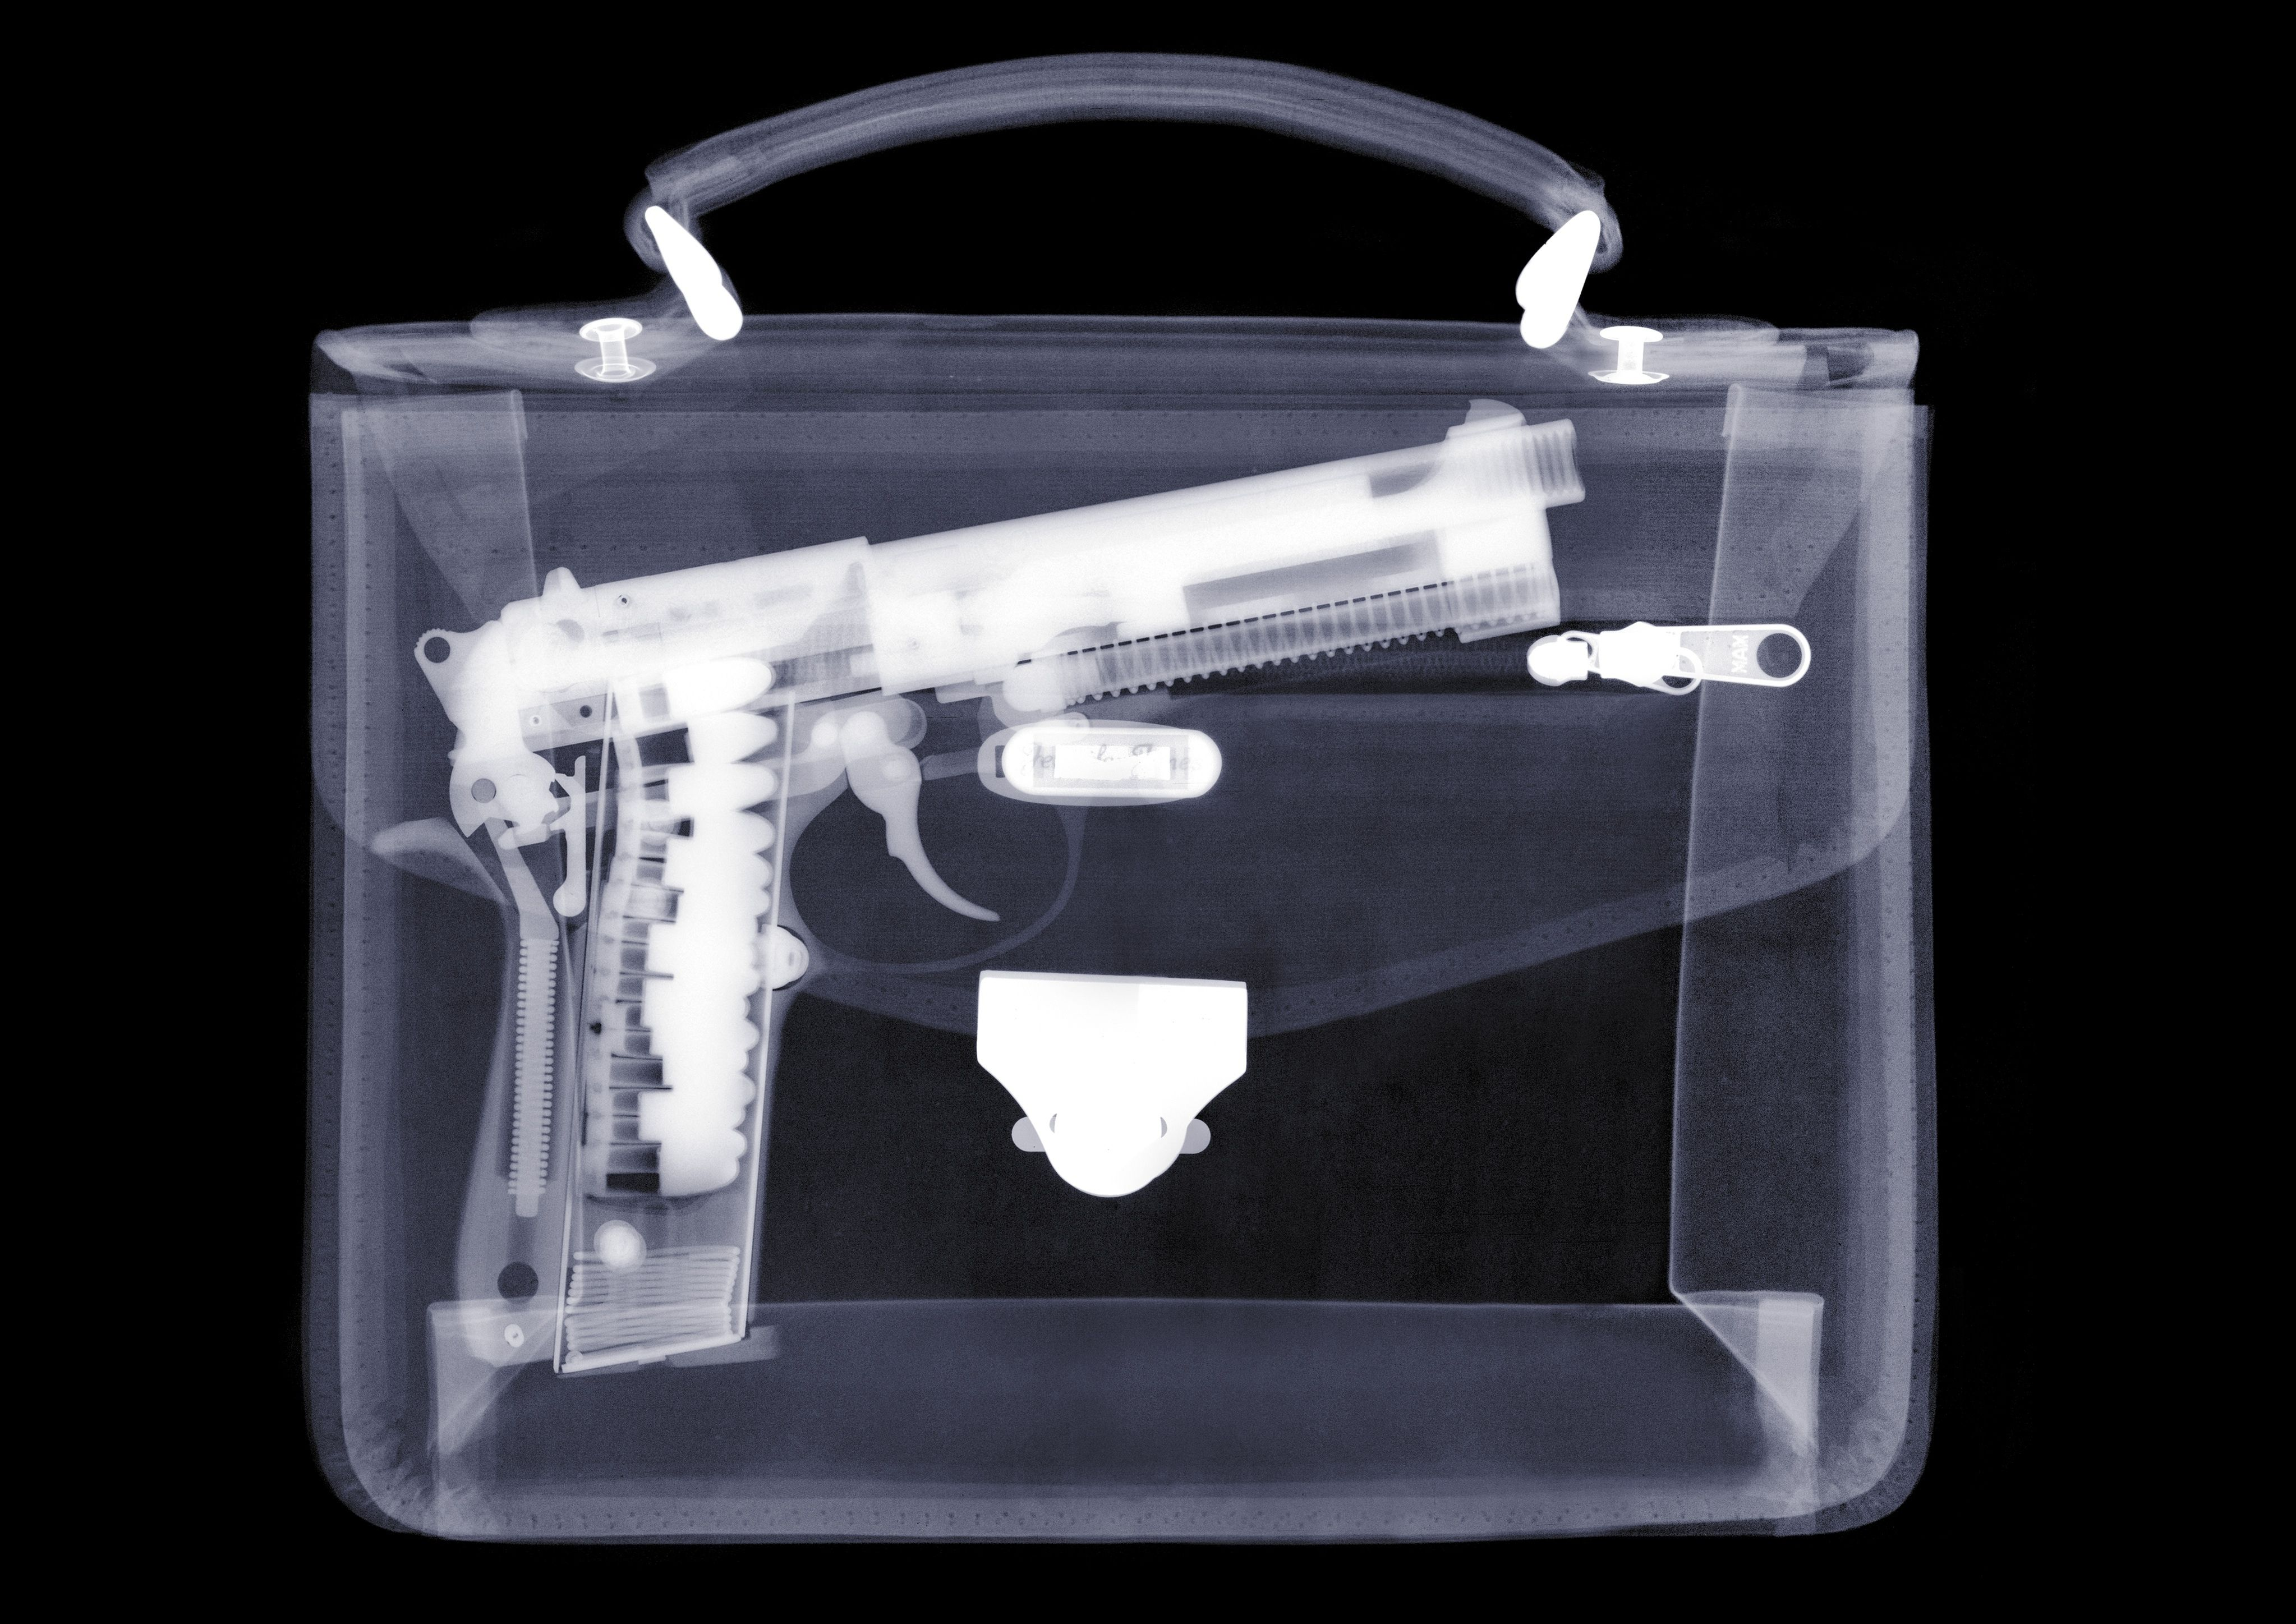 See a Concealed Weapons Sample Policy for Workplaces